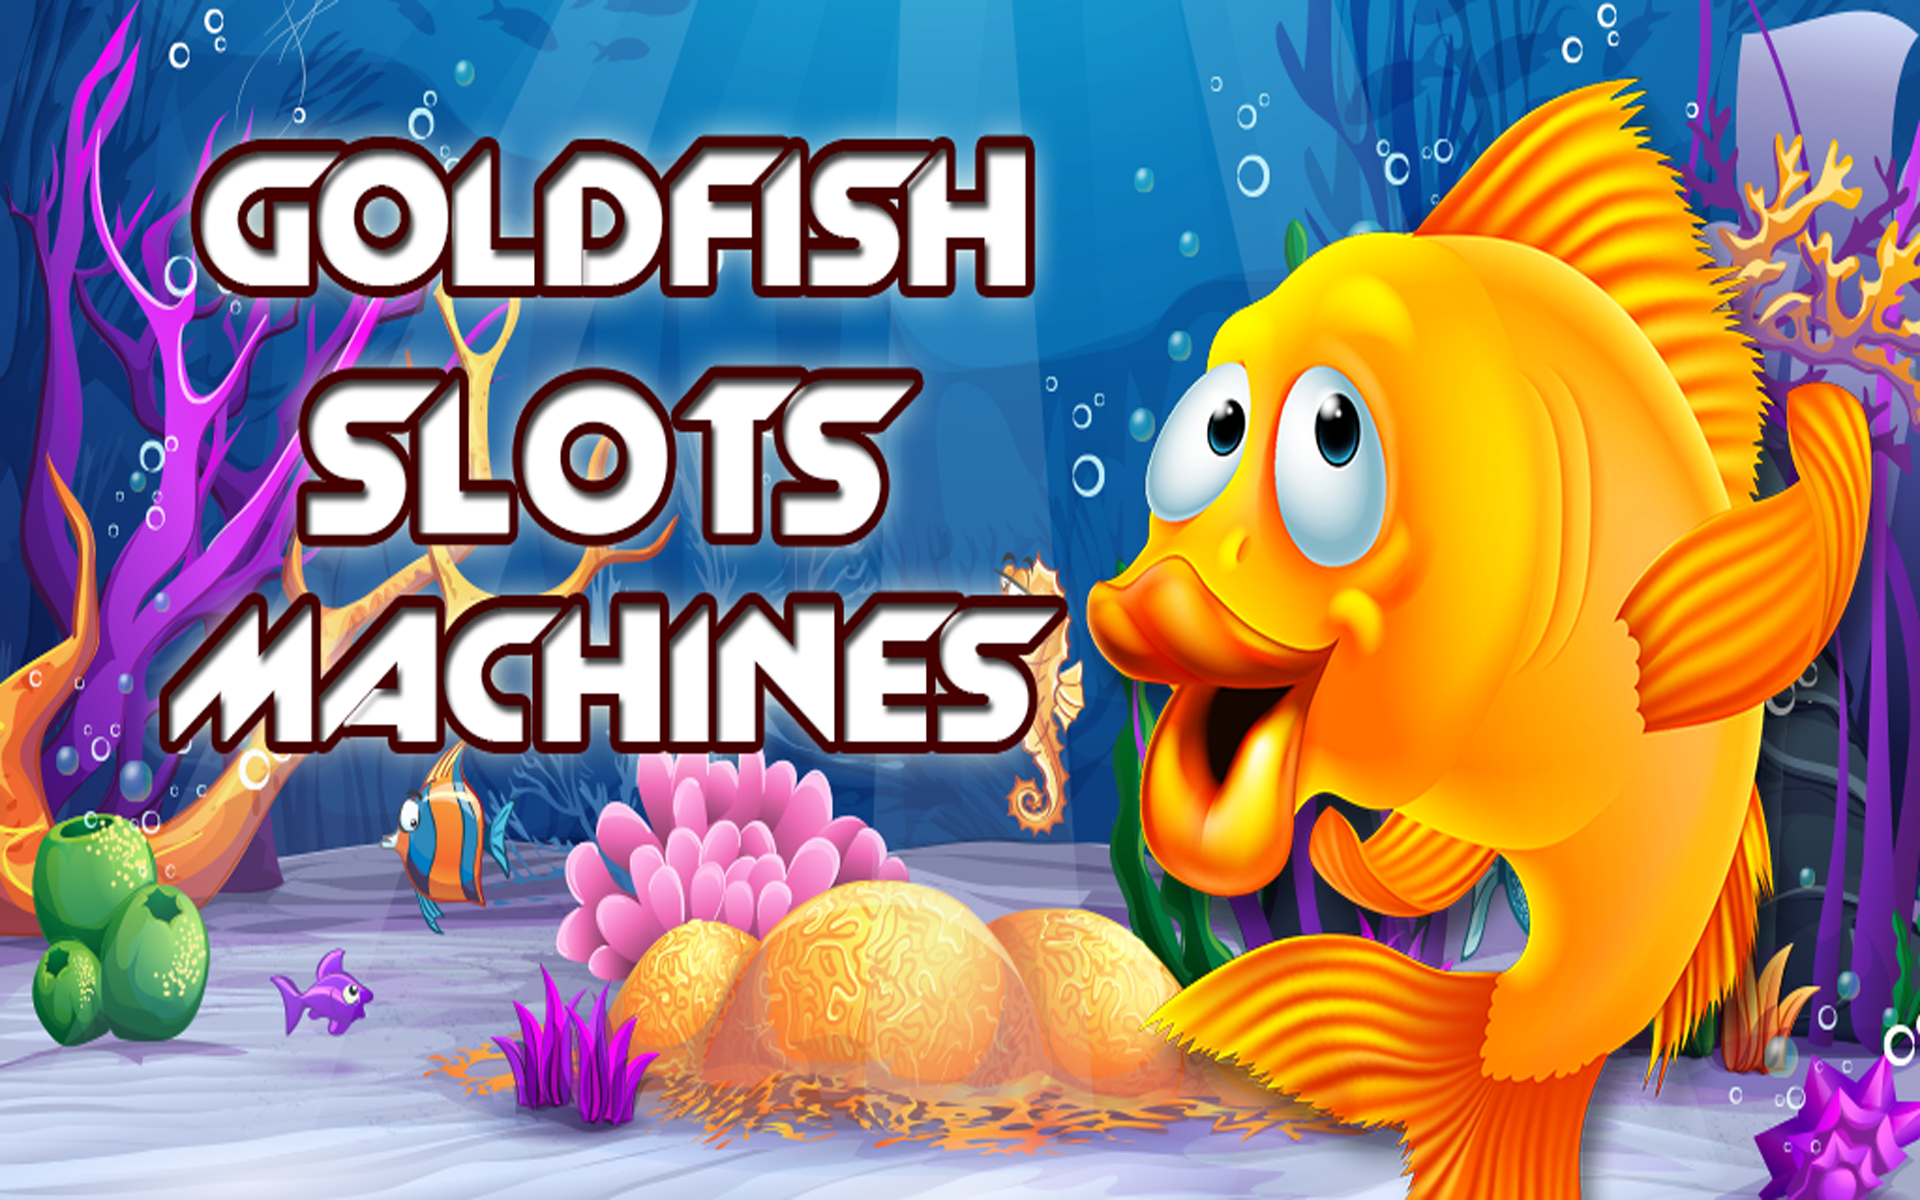 Gold fish slot machine makes your wishes come for Gold fish casino promo codes